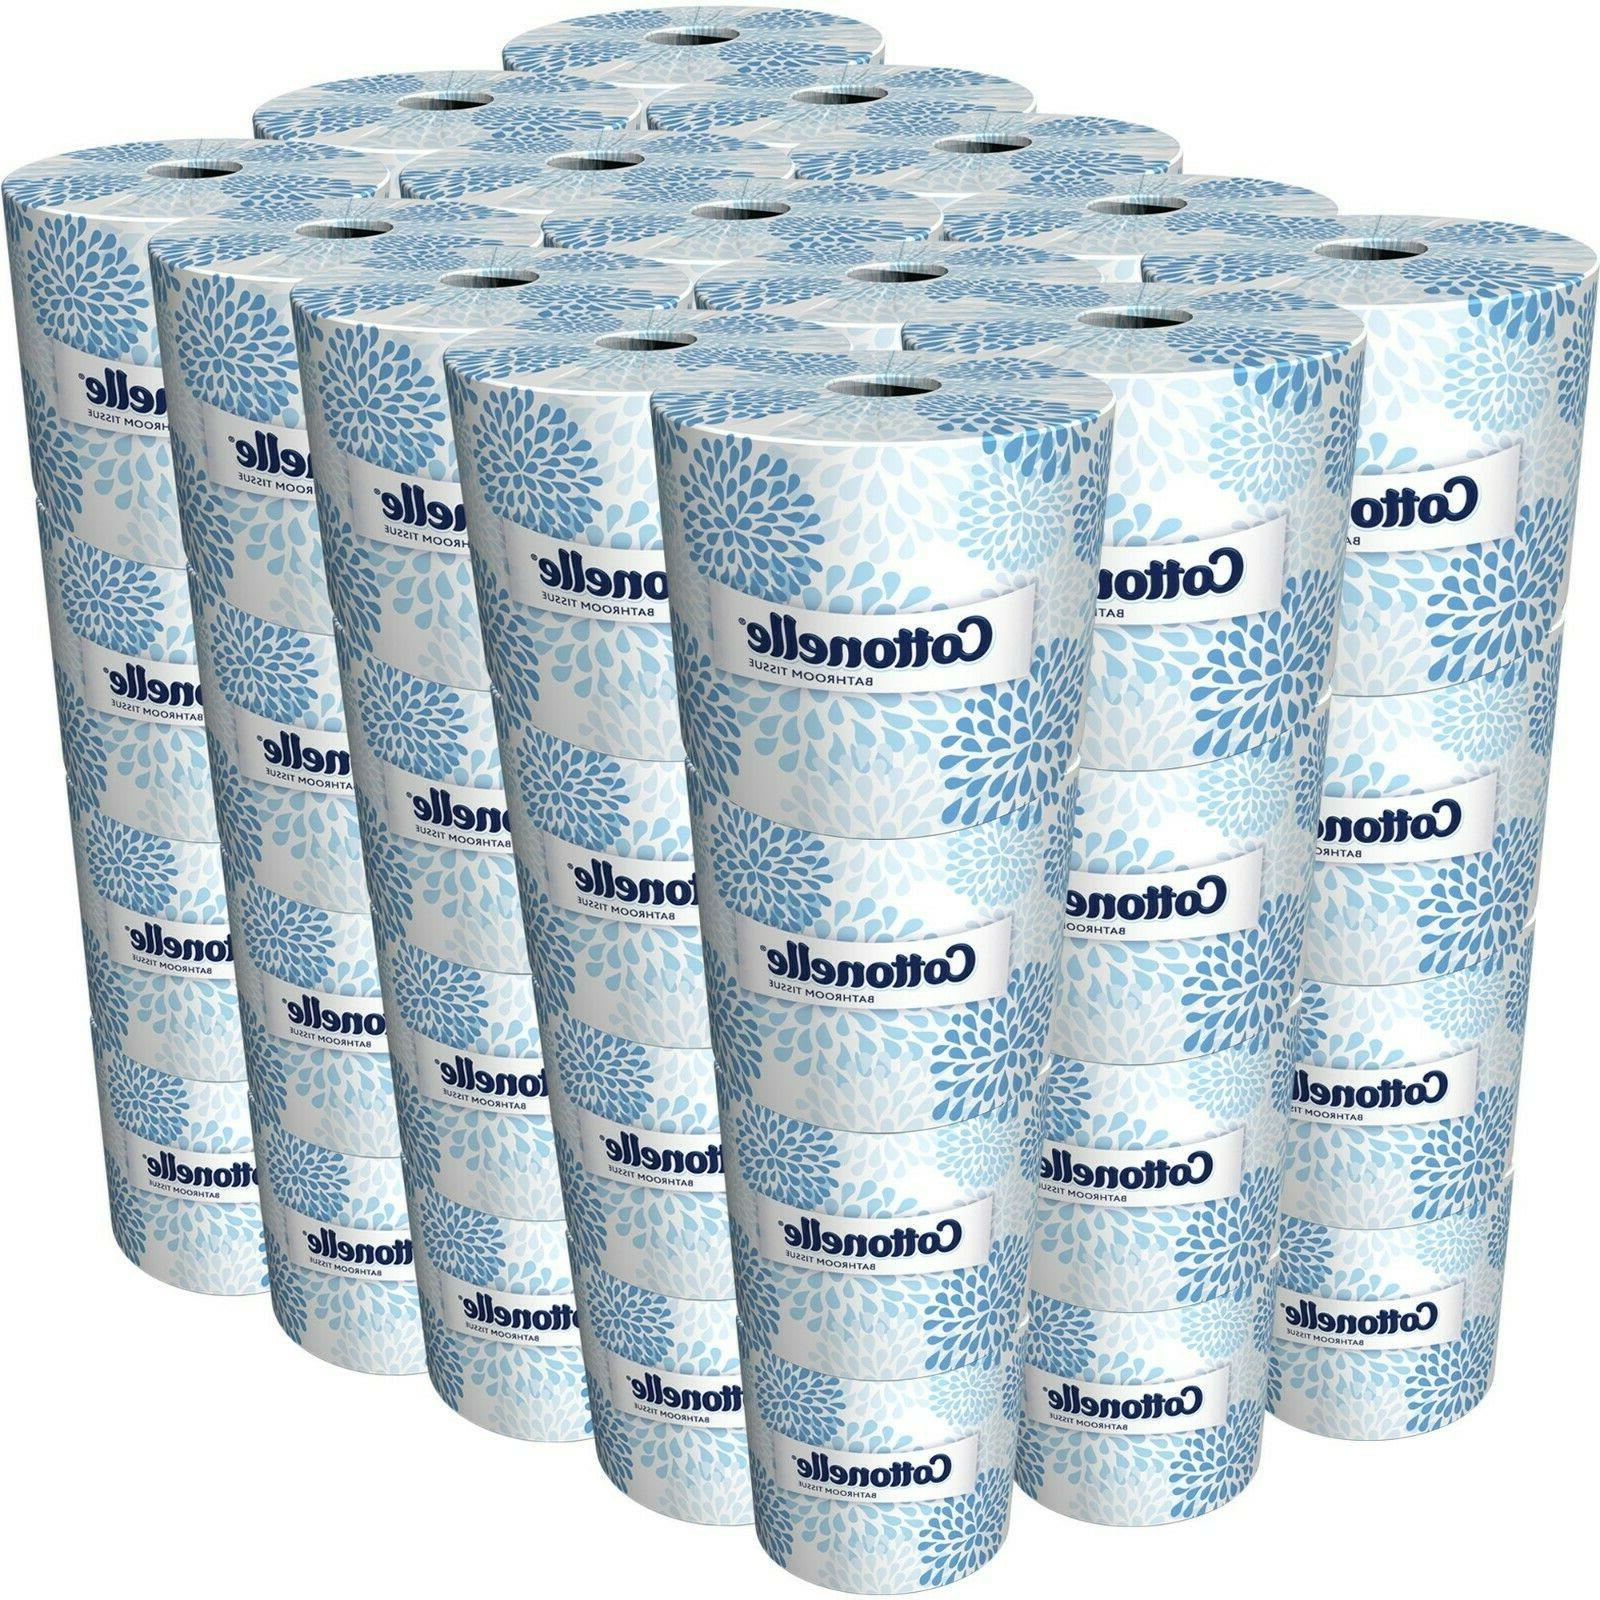 Kimberly-Clark Professional 2-Ply Standard Paper 60 Rolls